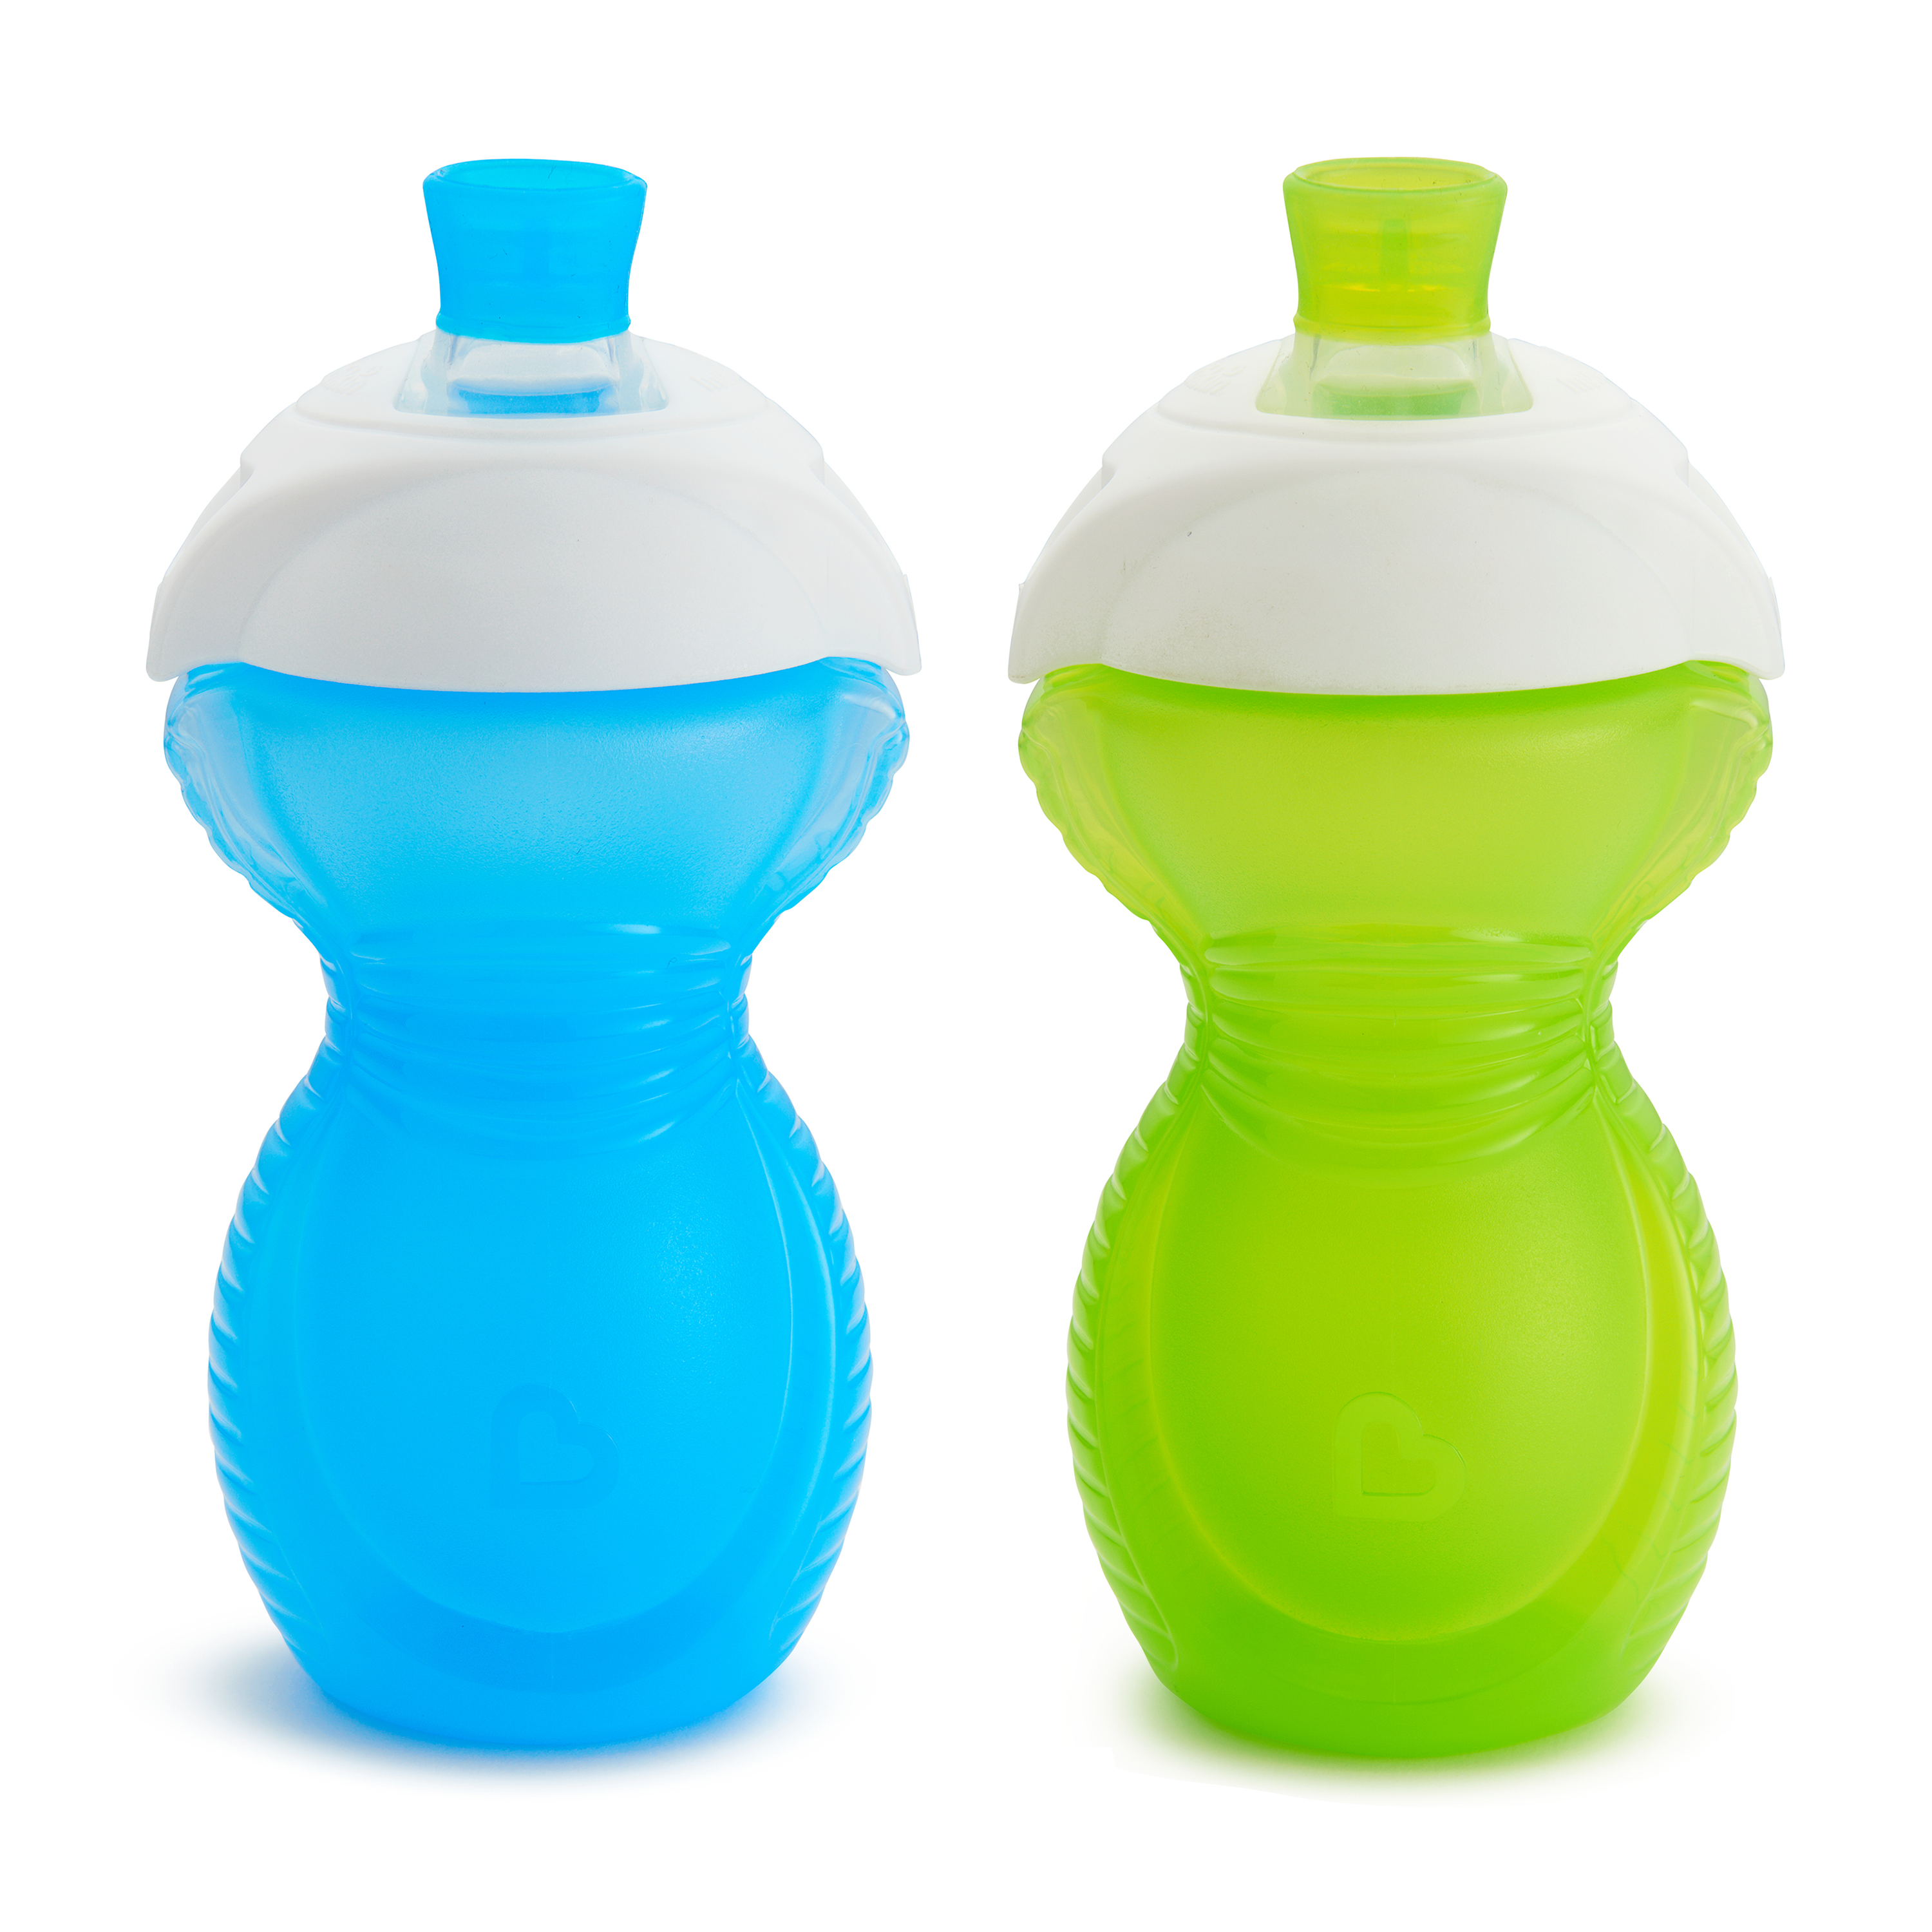 Munchkin Click-Lock Bite Proof Soft Spout Sippy Cup - 2 pack (Color May Vary)